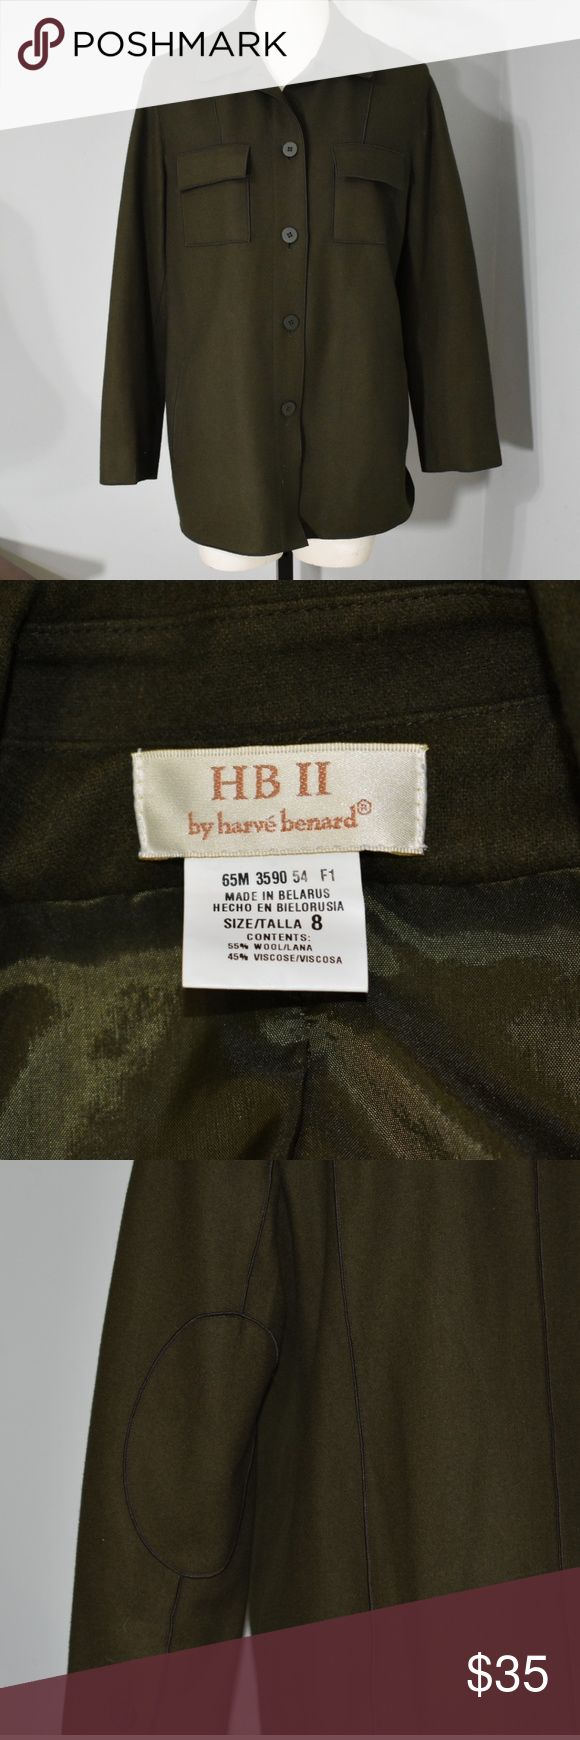 Harve Benard Vtg Military Style elbow patch jacket Size 8 • Wool blend • Green • EUC Harve Benard Jackets & Coats